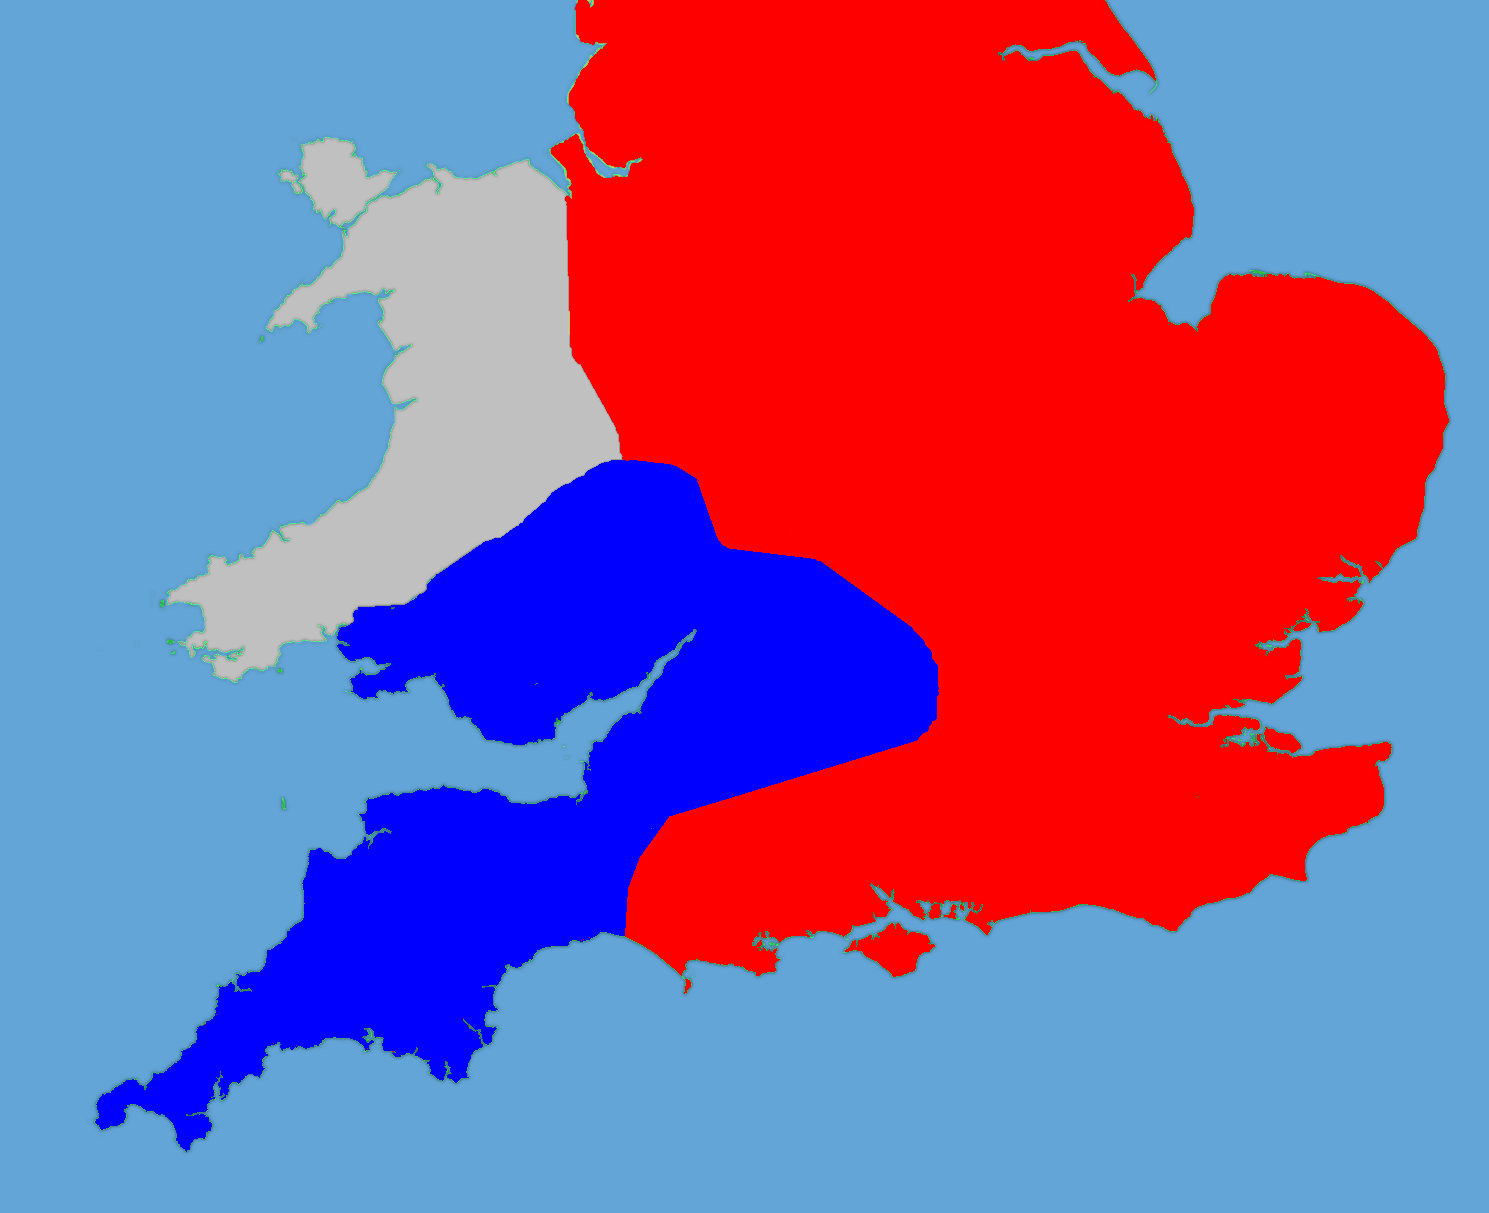 blank world map with File Political Map Of England 1140 on Carte Usa Etats Unis besides Wallpaper moreover A Cold War Map Challenge further Smart Phone Icon 1236402 besides File Political map of England 1140.